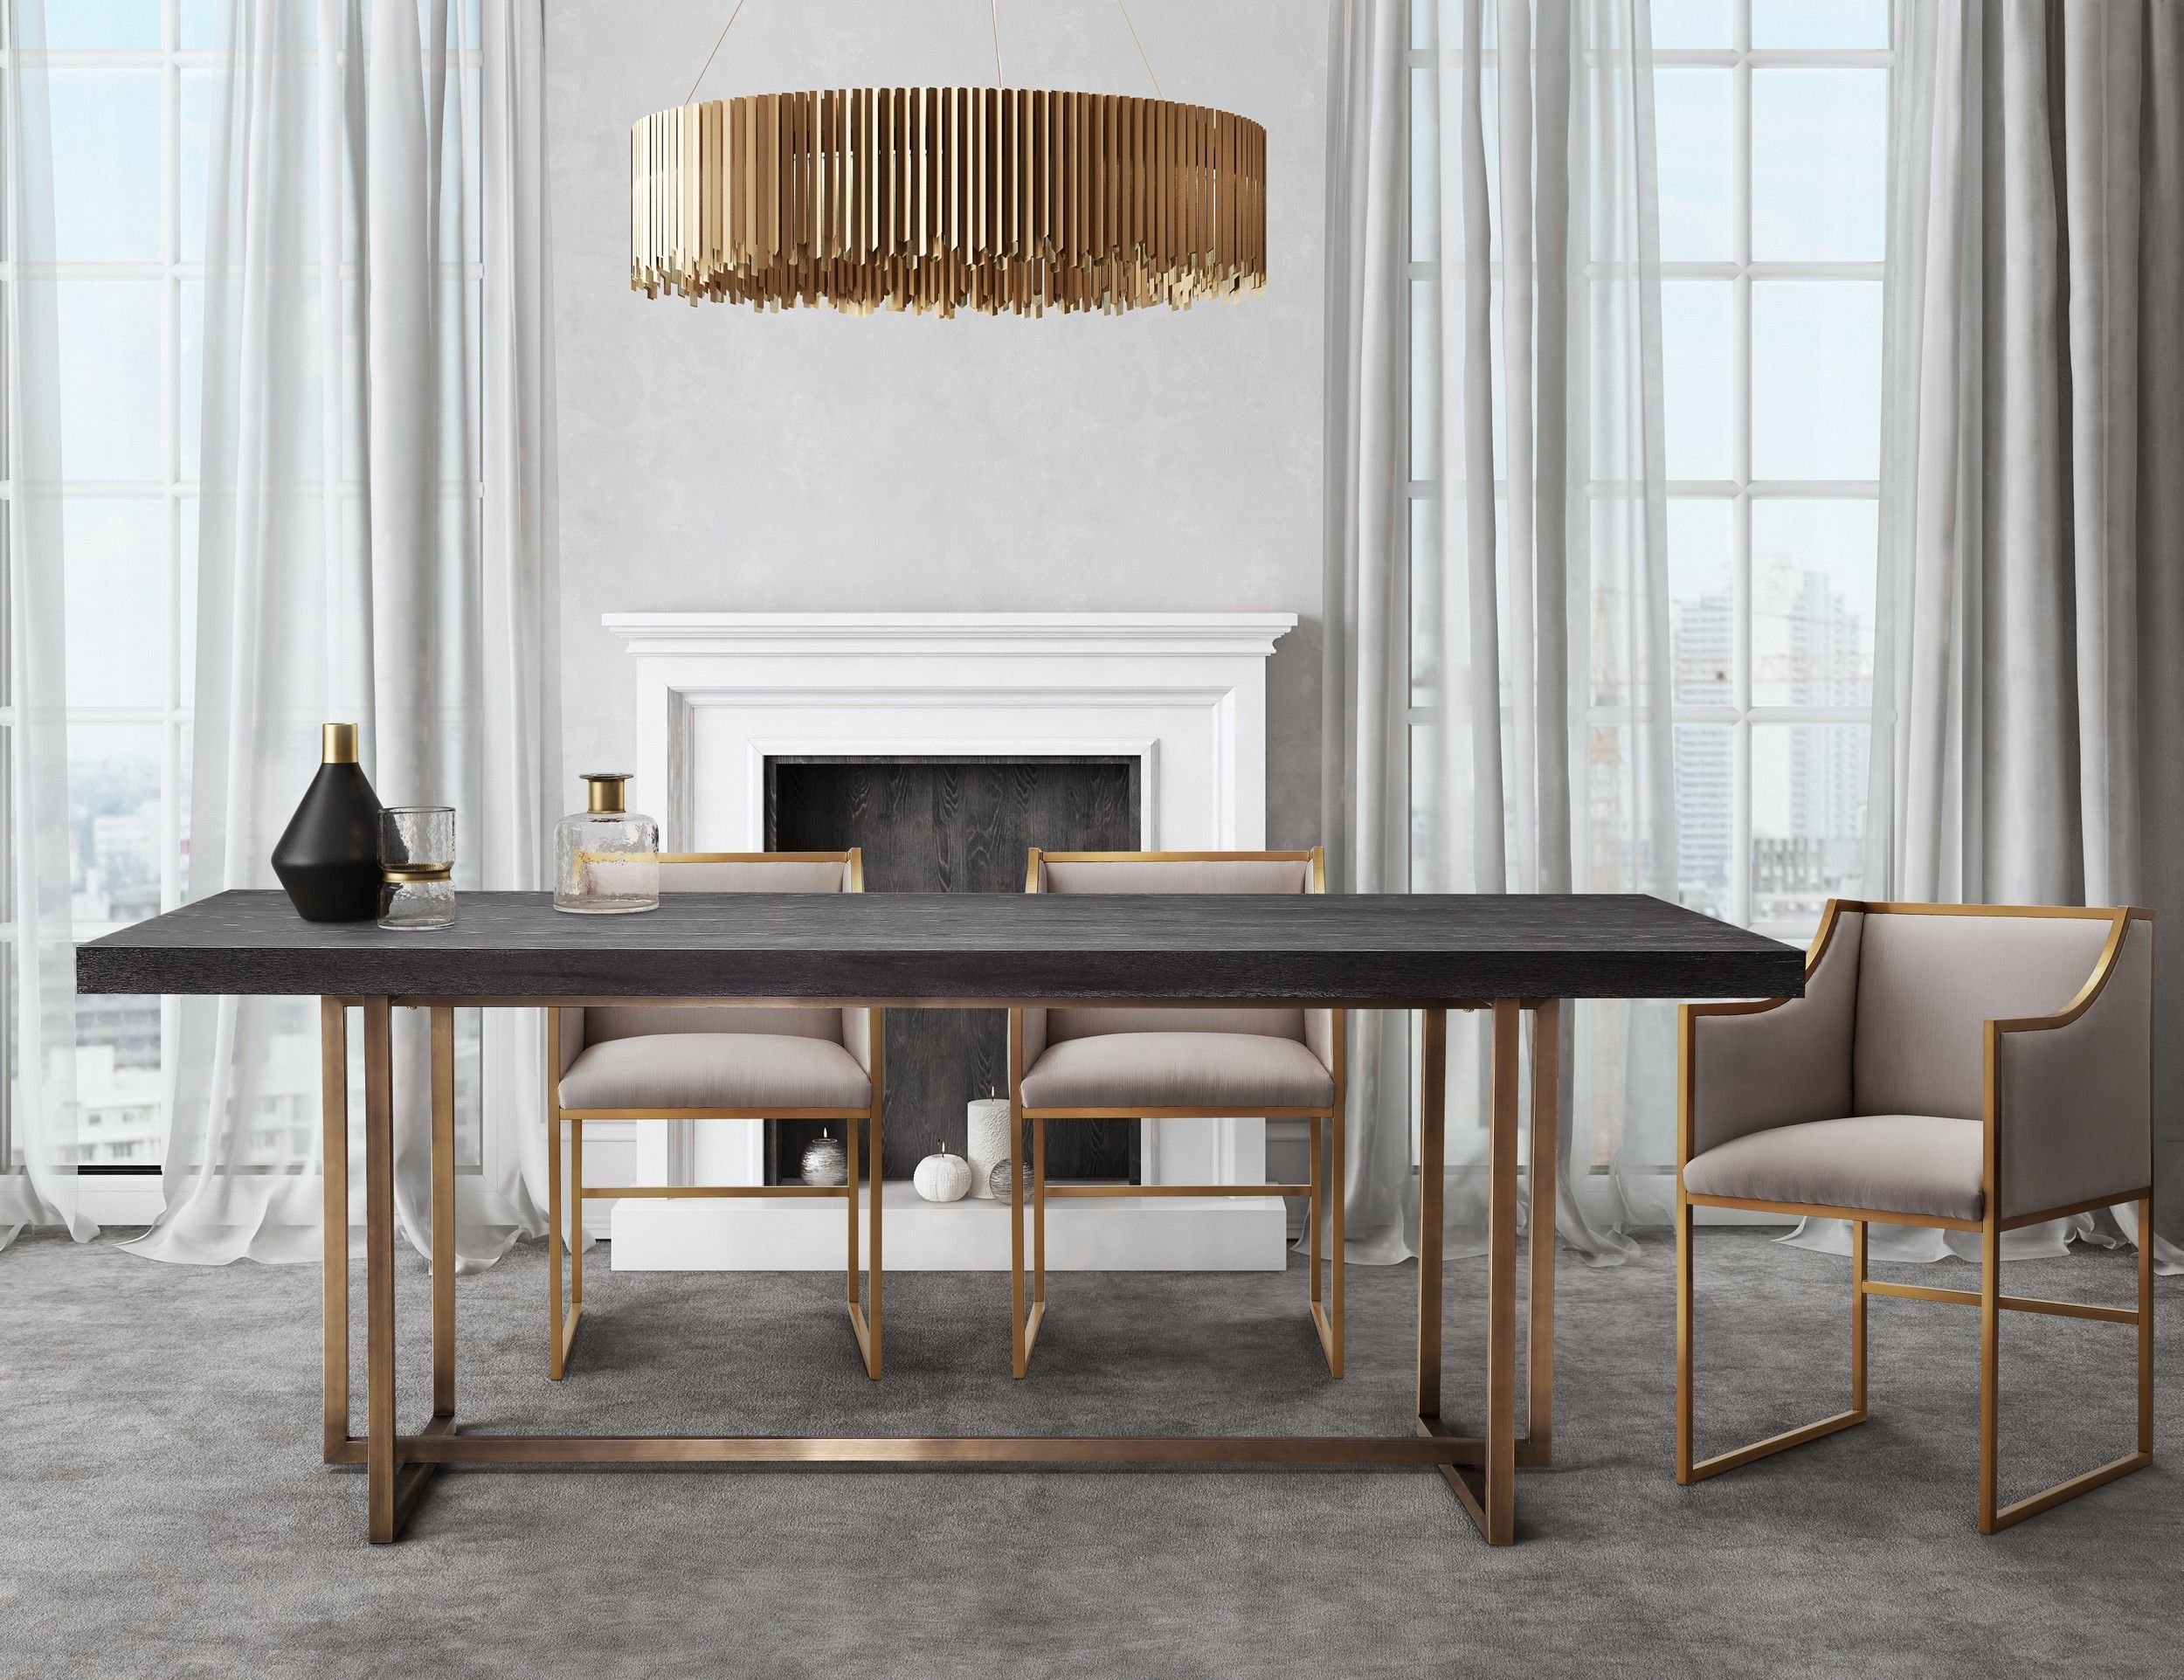 Tov Furniture Tov L6138 Tov L6122 Tov L6122 Tov L6122 Tov L6122 Home Feed In 2019 Contemporary Dining Room Sets Modern Dining Table Luxury Dining Room